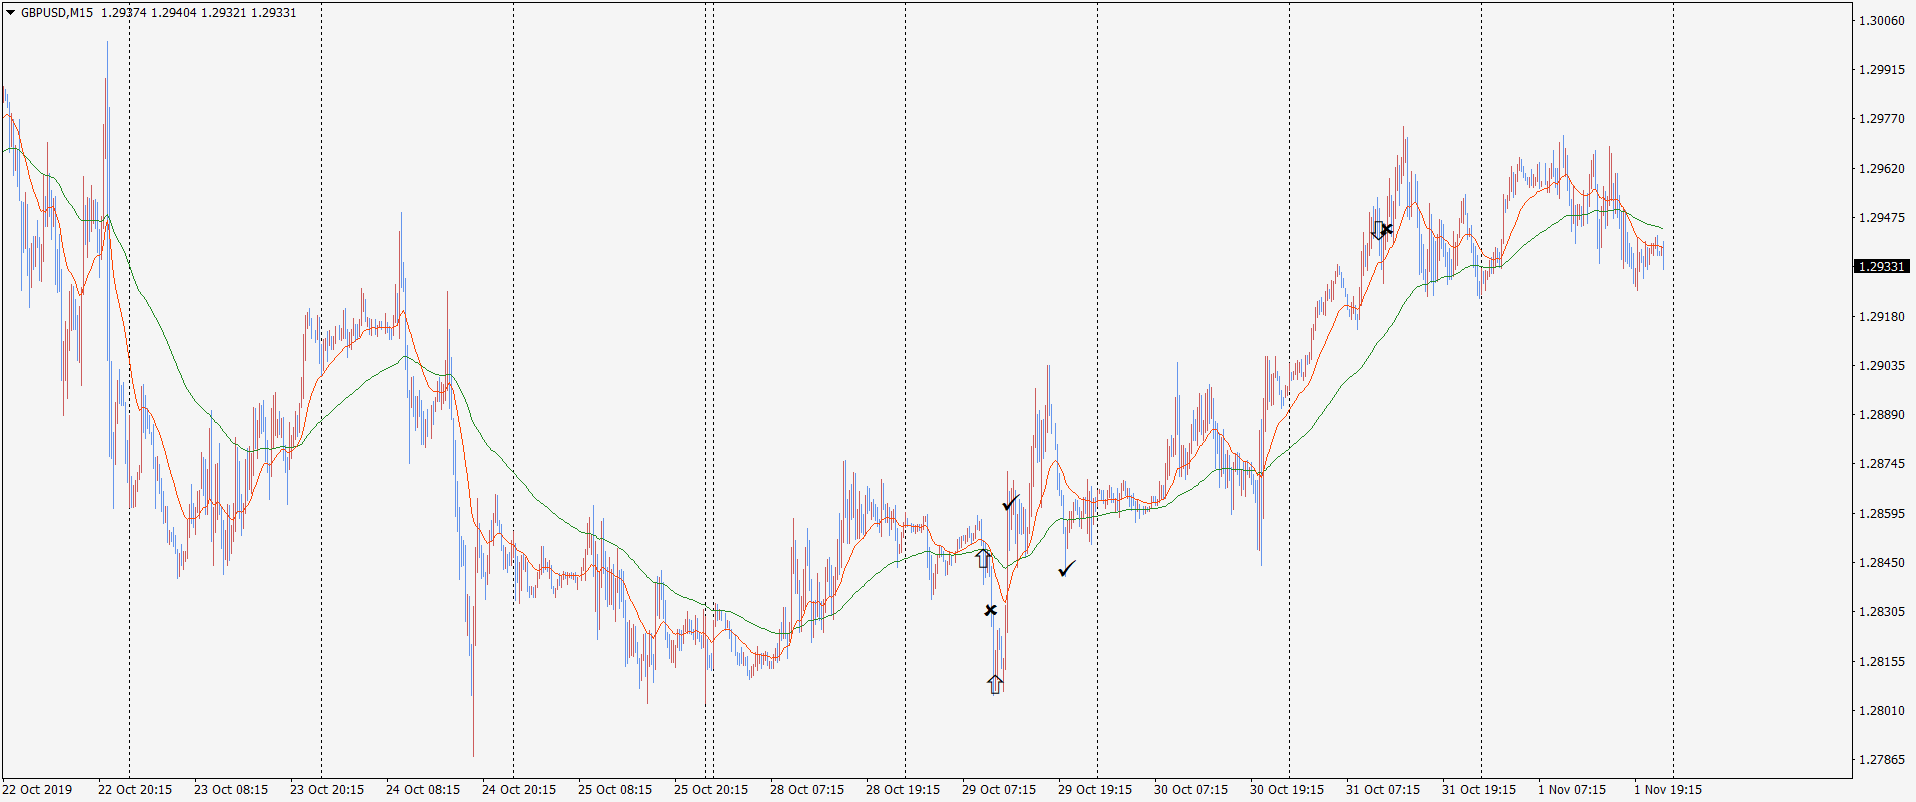 19-11-02-gbpusd-m15-tradexfin-limited.png